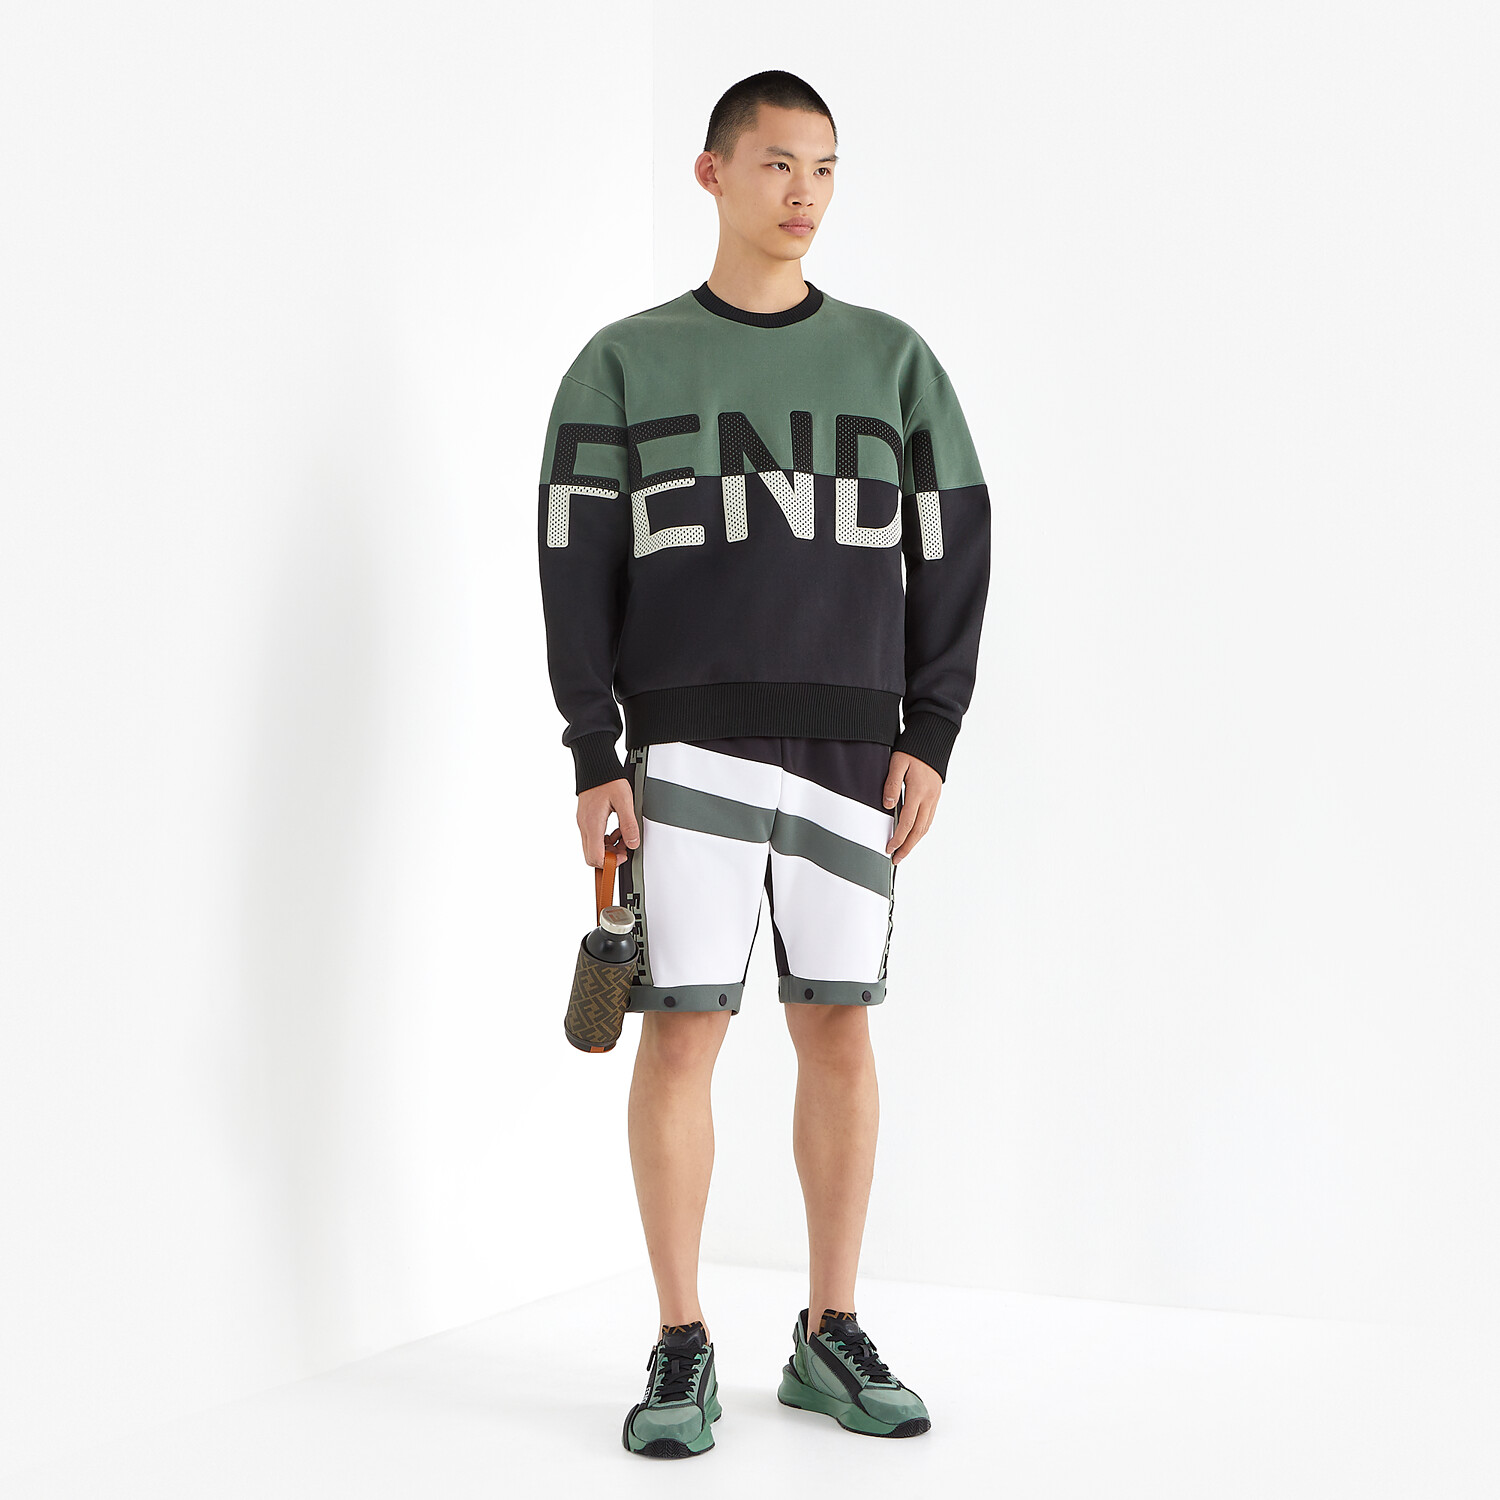 FENDI SWEATSHIRT - Multicolor cotton sweatshirt - view 4 detail